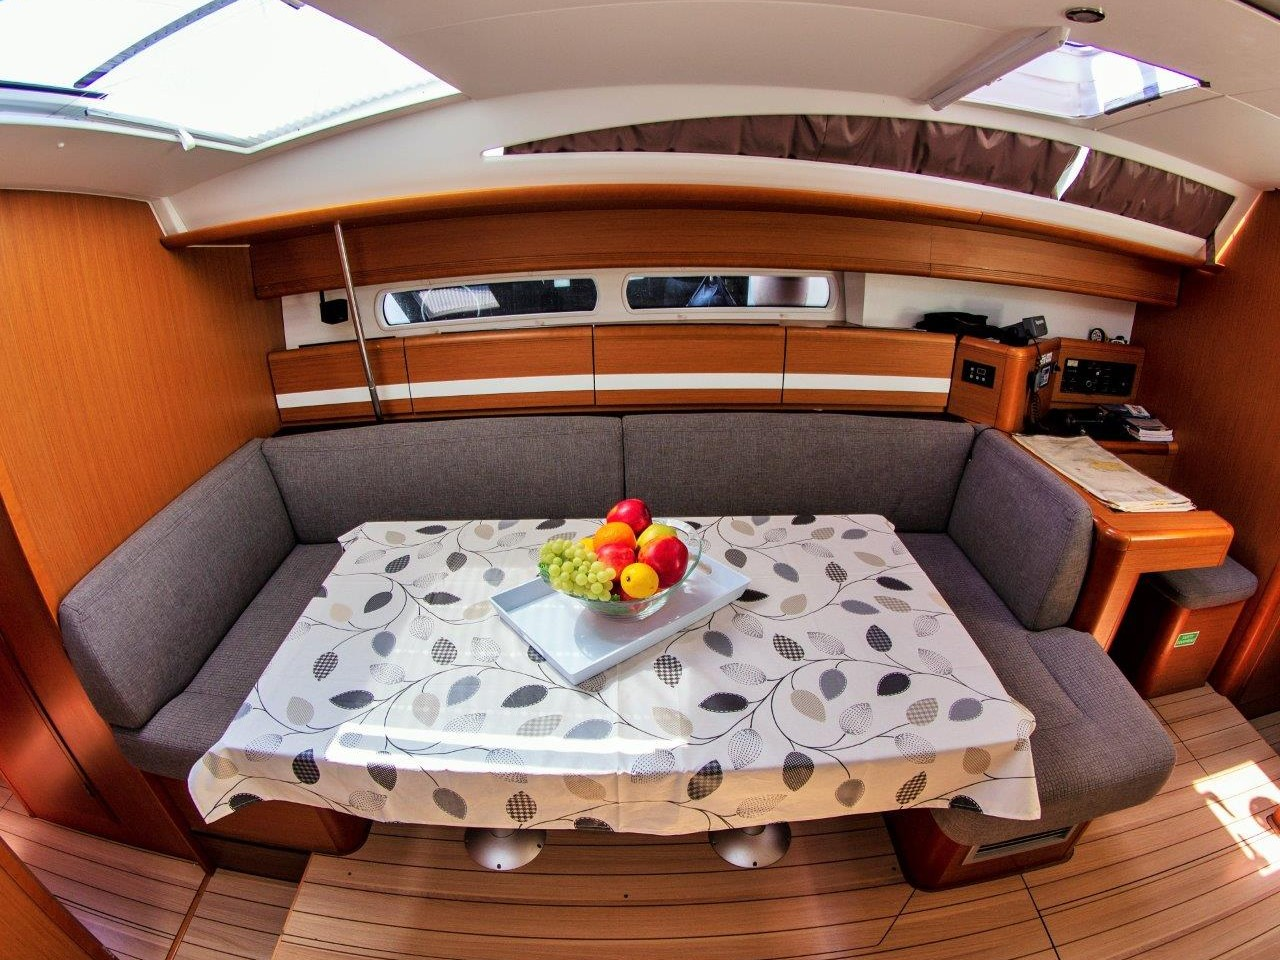 Jeanneau 53 (2013) equipped with roll mainsail, bo (MUŠULA) Interior image - 11